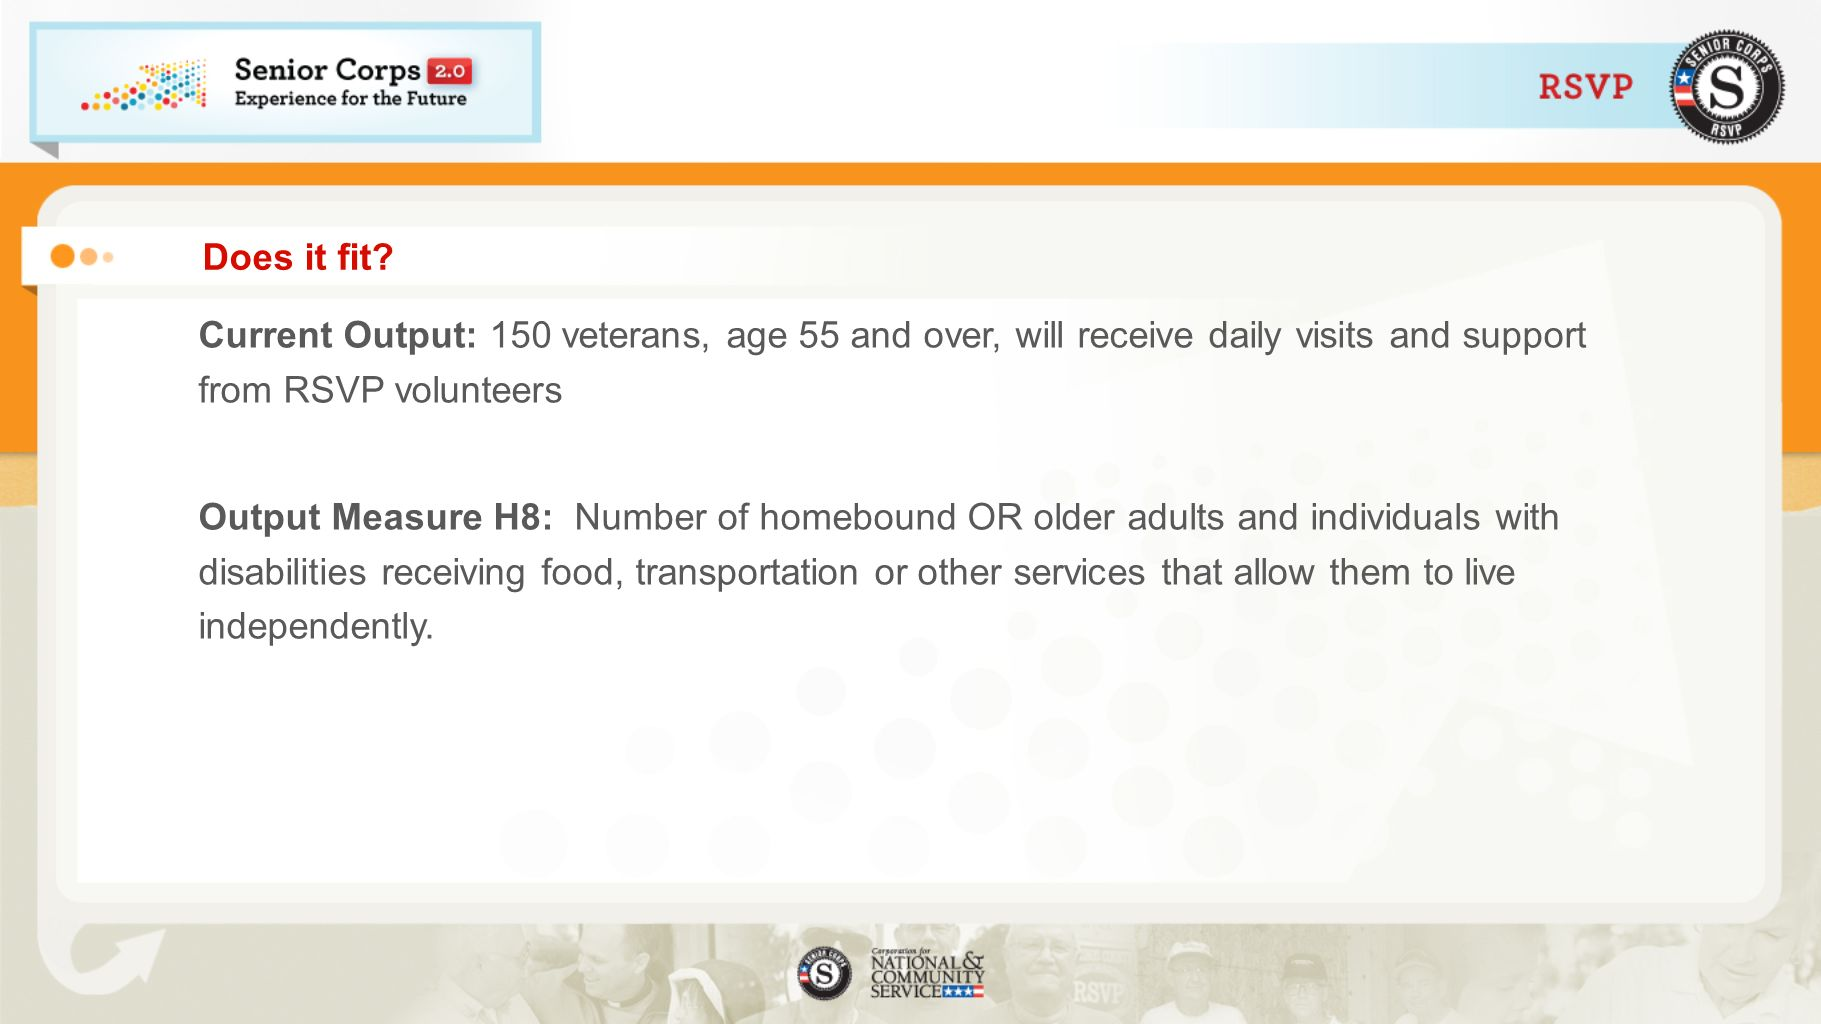 Does it fit Current Output: 150 veterans, age 55 and over, will receive daily visits and support from RSVP volunteers.